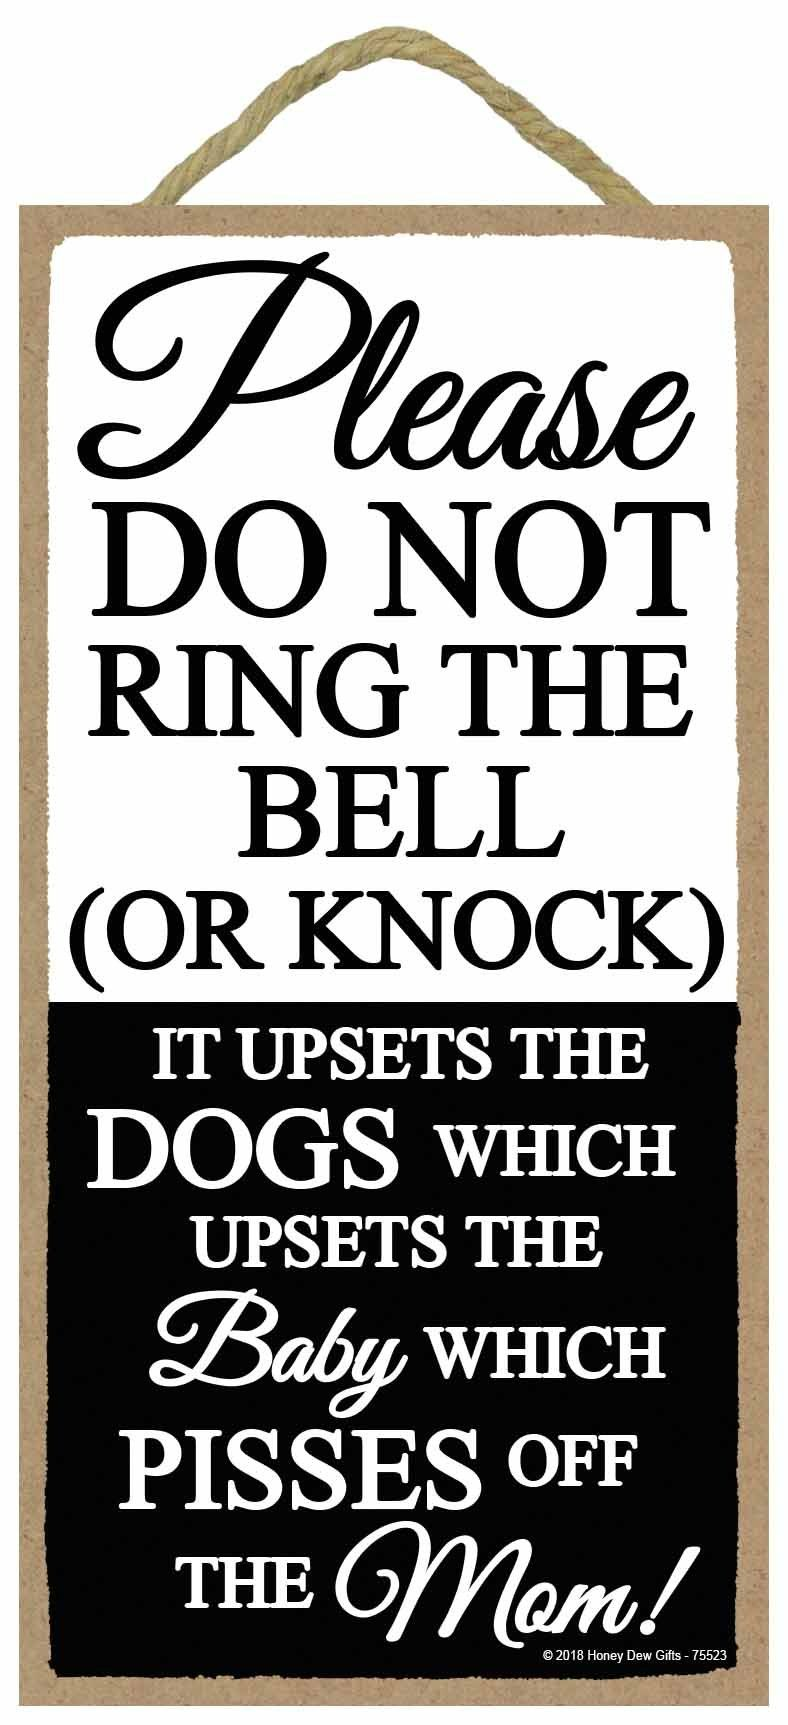 Funny Door Signs Please Do Not Ring The Bell Or Knock 5 X 10 Inch Hanging Wall Art Do Not Knock Sign Click Image For Funny Door Signs Door Signs Knock Knock